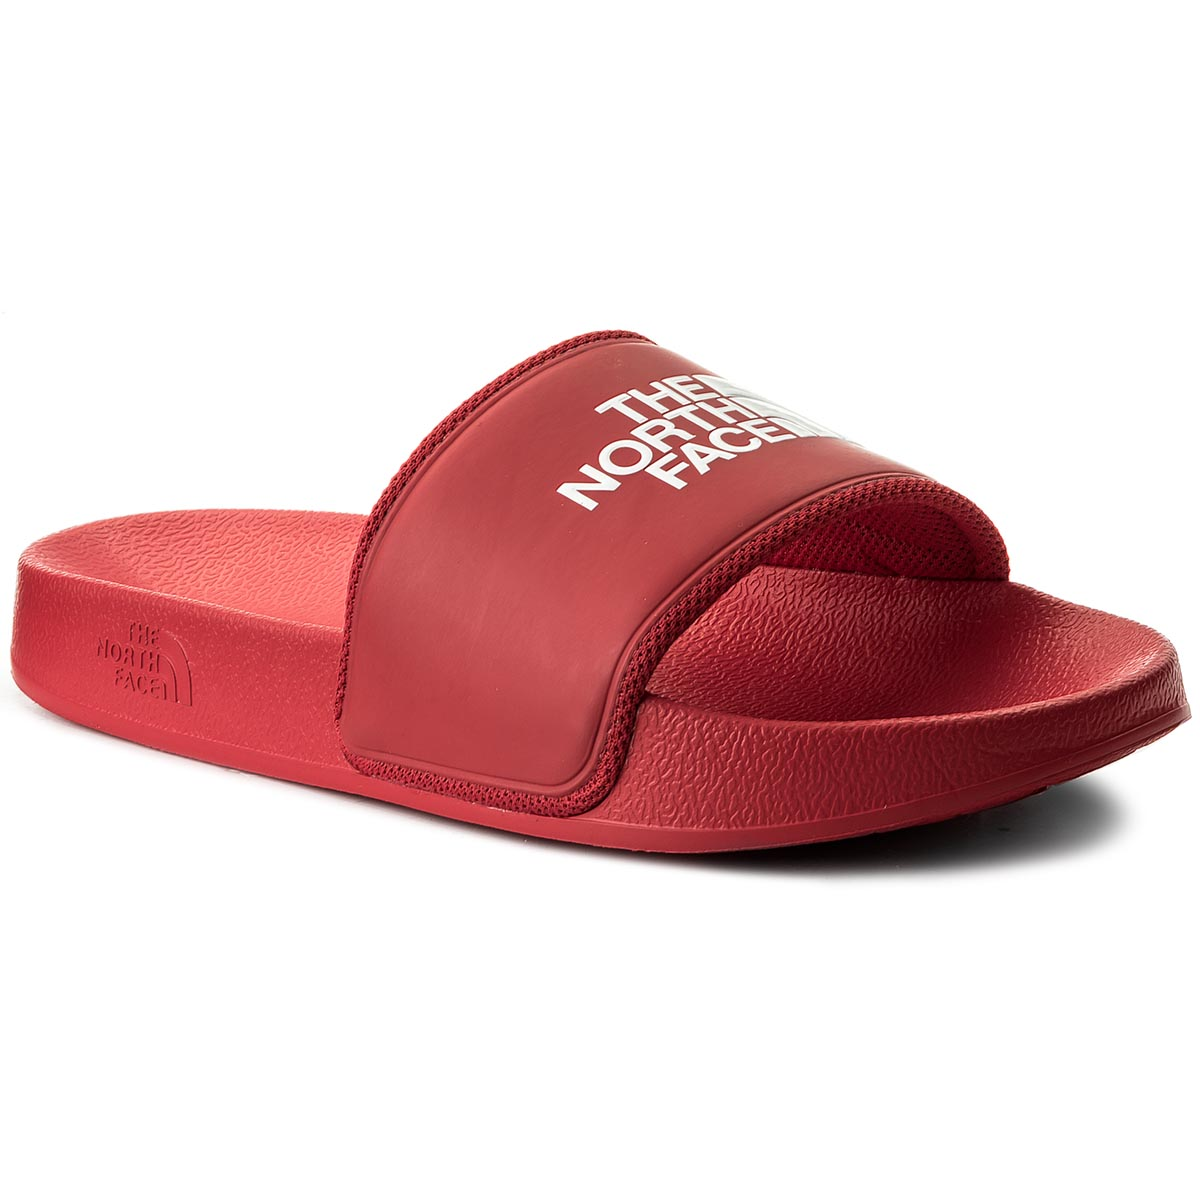 Klapki THE NORTH FACE - Base Camp Slide II T93K4BKZ4 Tnf Red/Tnf White